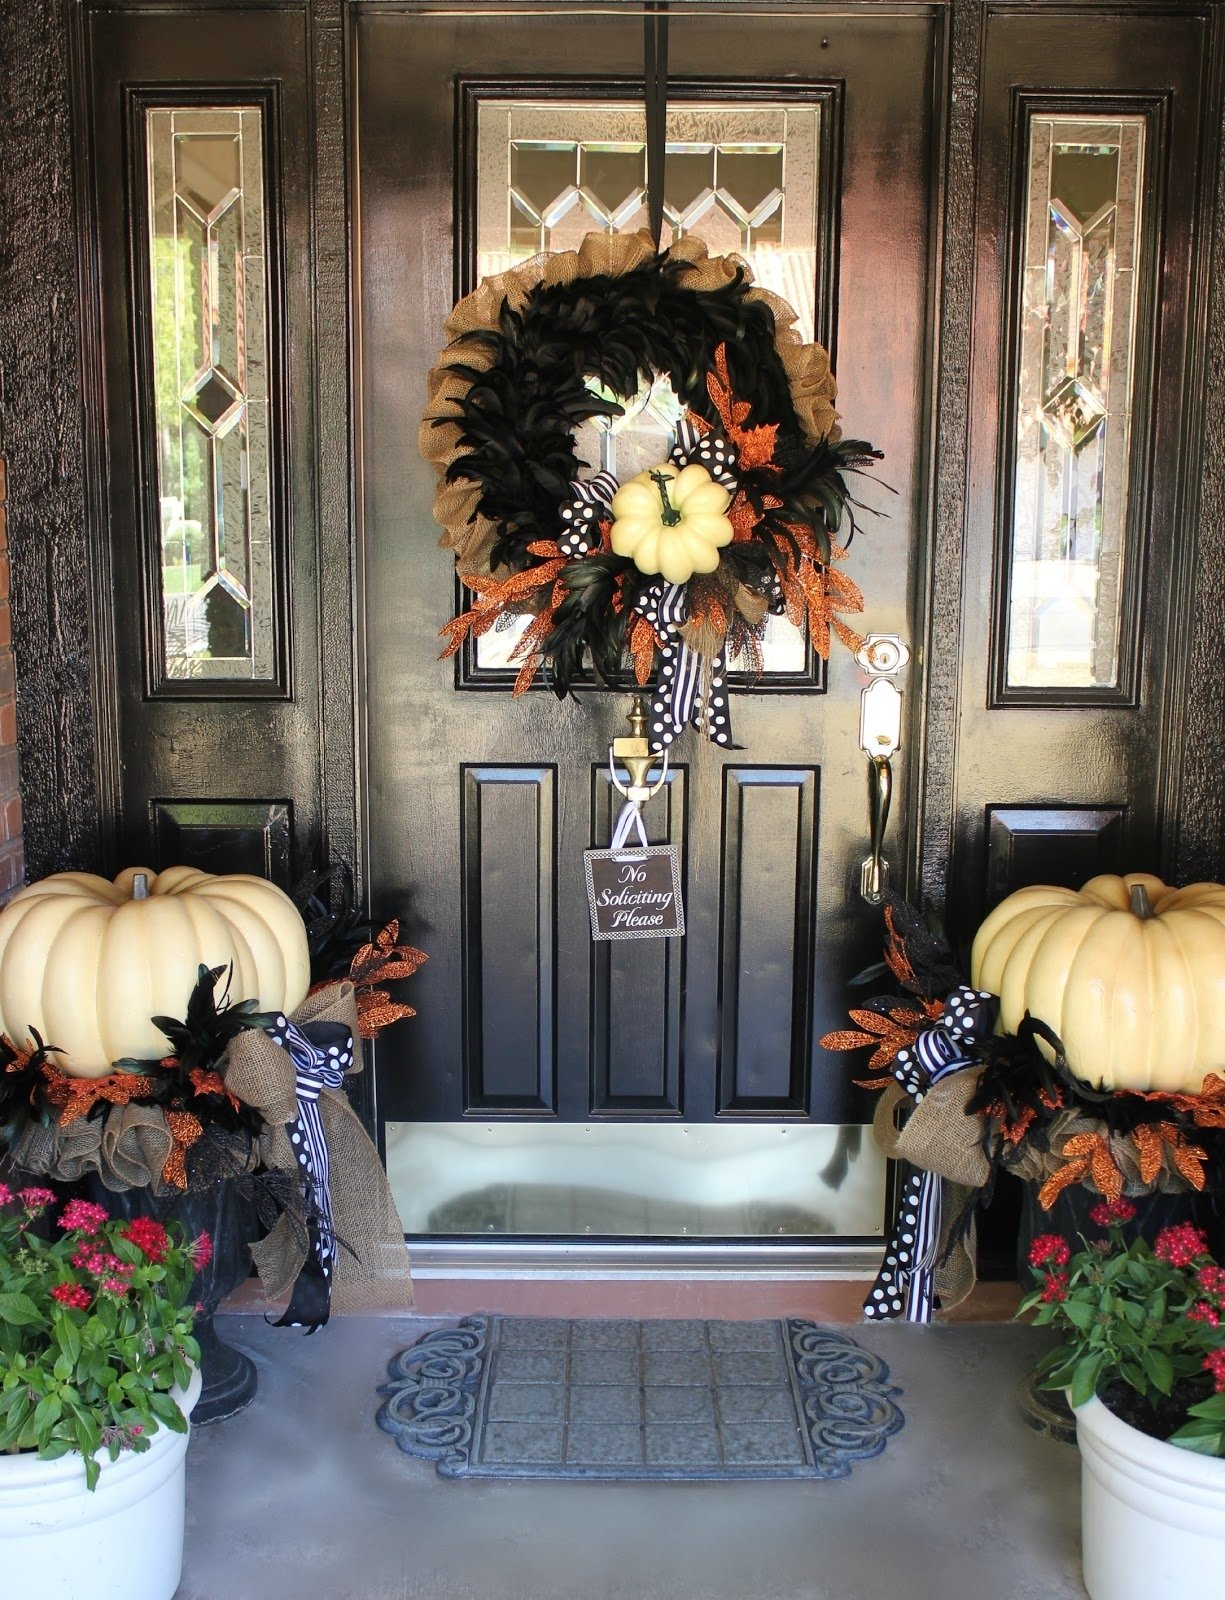 10 Cute Fall Front Porch Decorating Ideas best brilliant ideas for fall decorating a front po 3760 2020